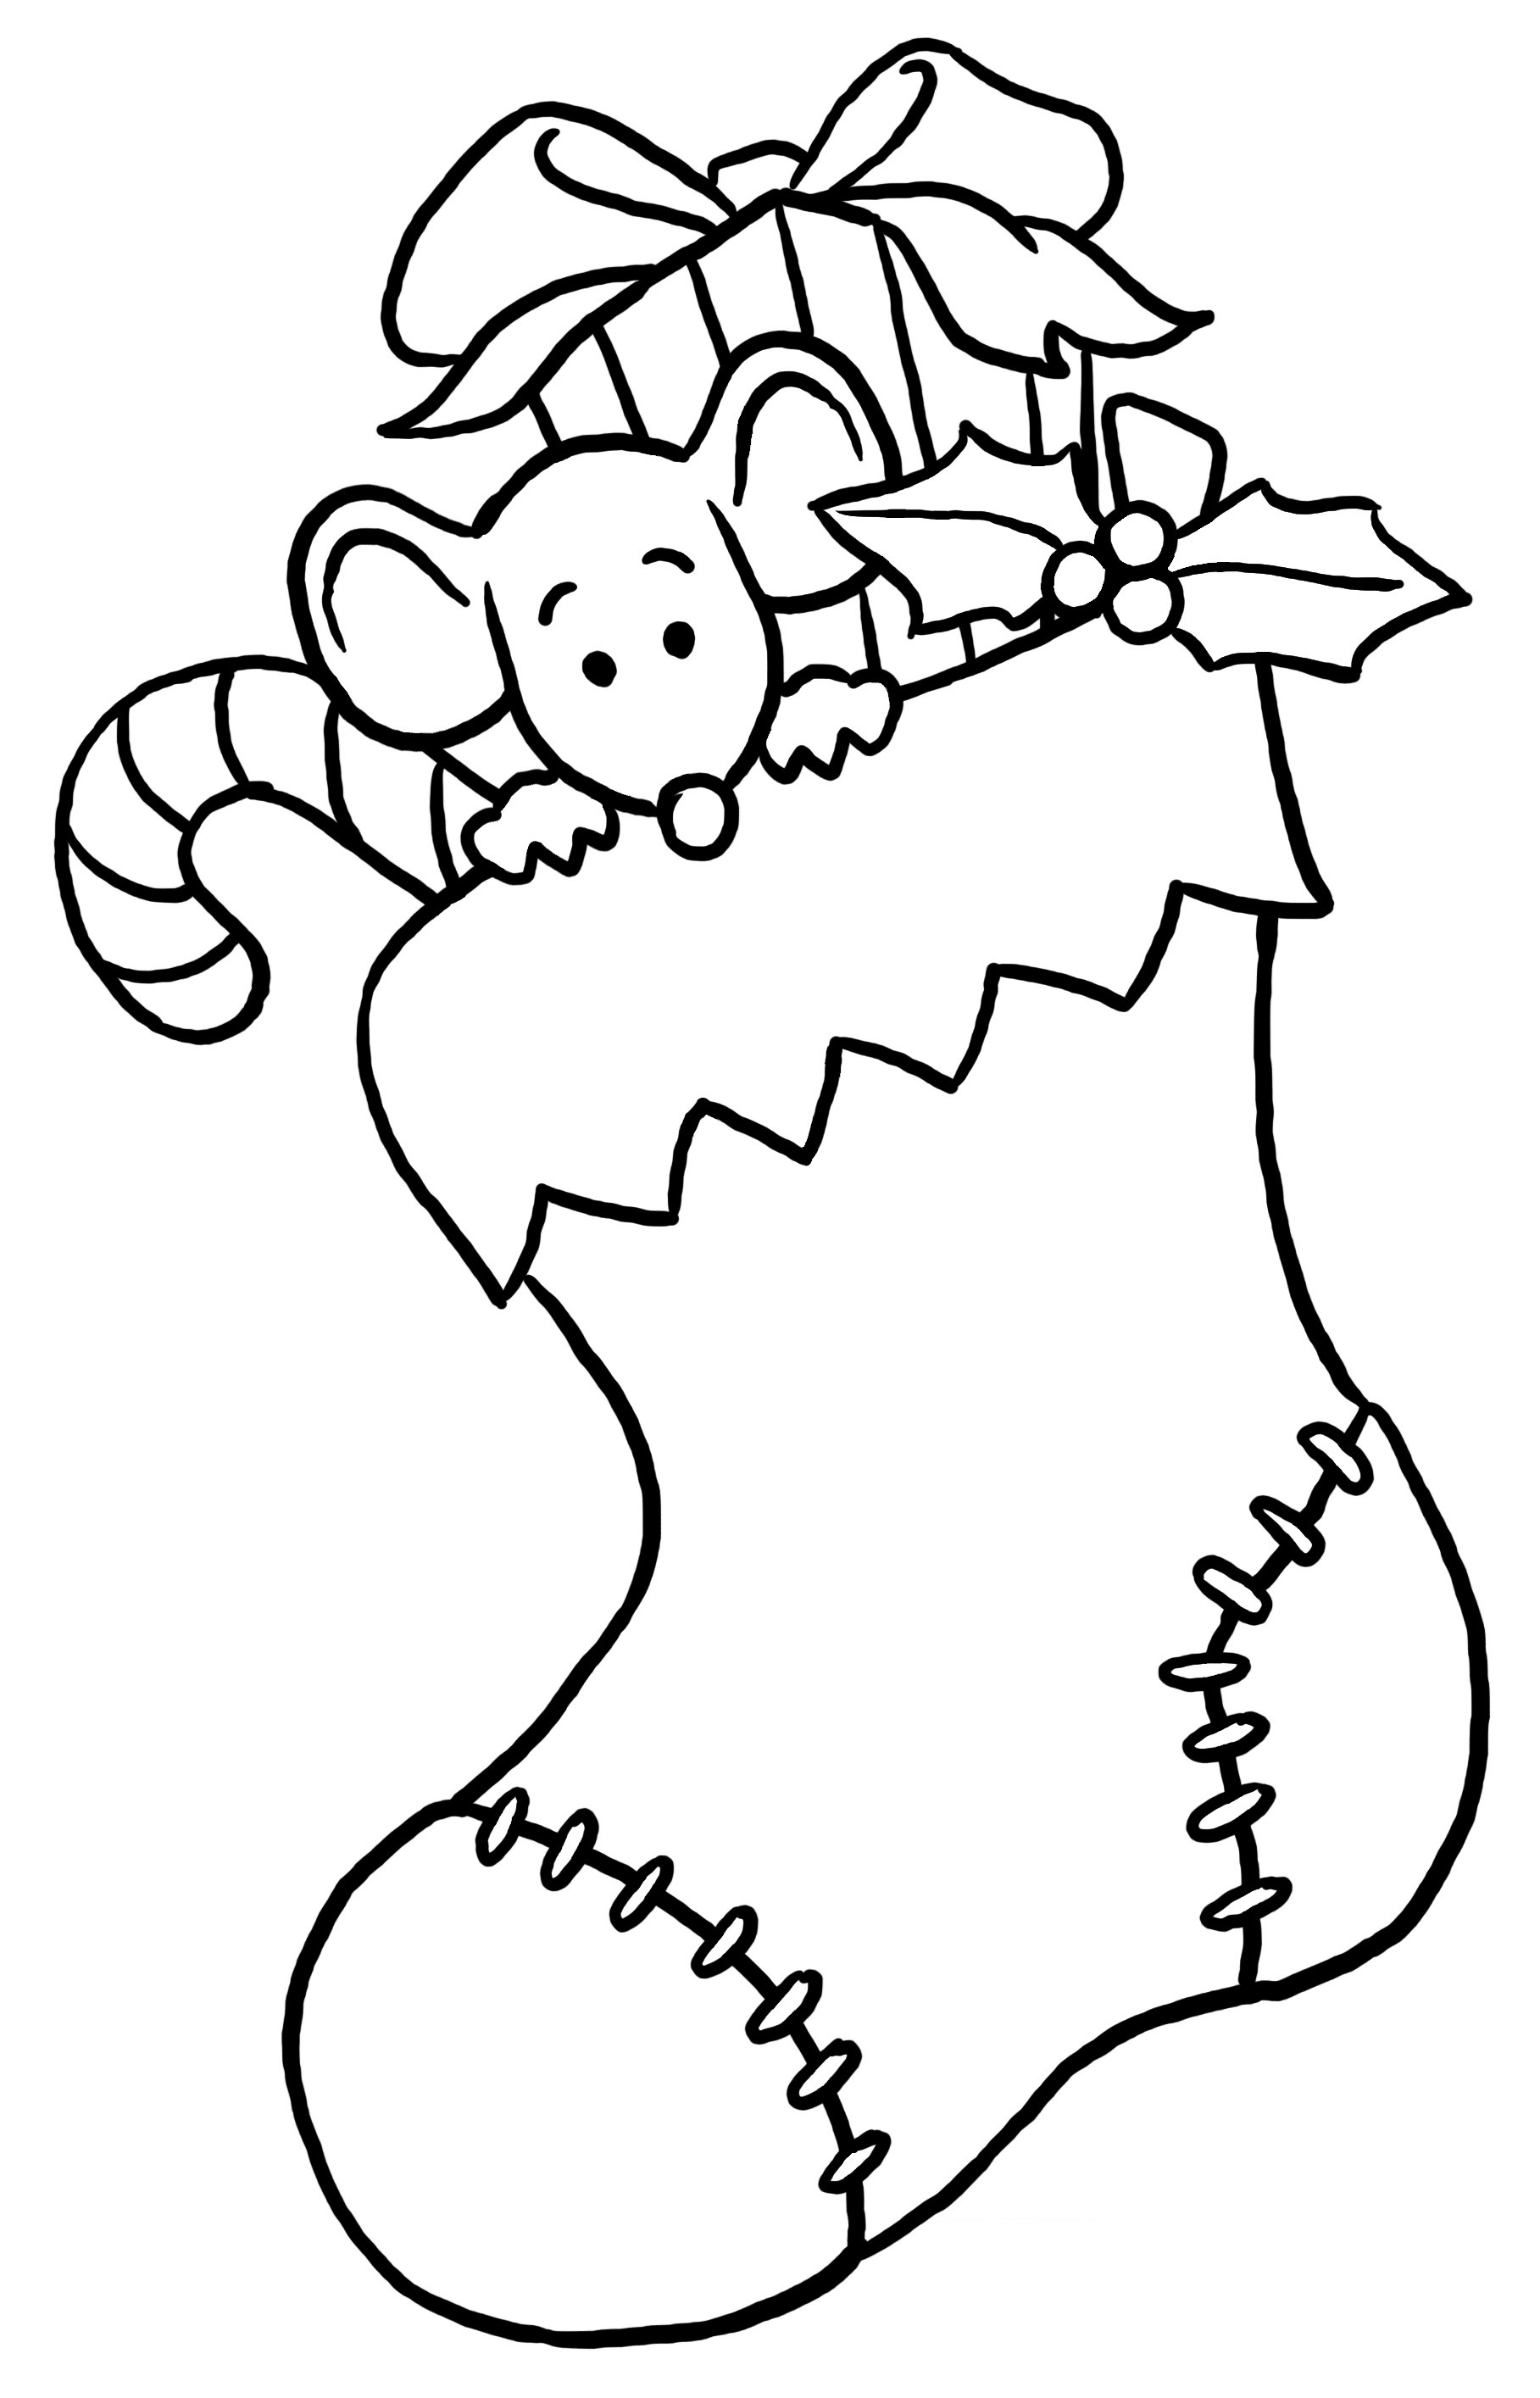 Best ideas about Free Holiday Printable Coloring Sheets . Save or Pin Christmas Coloring Pages Free And Printable Now.